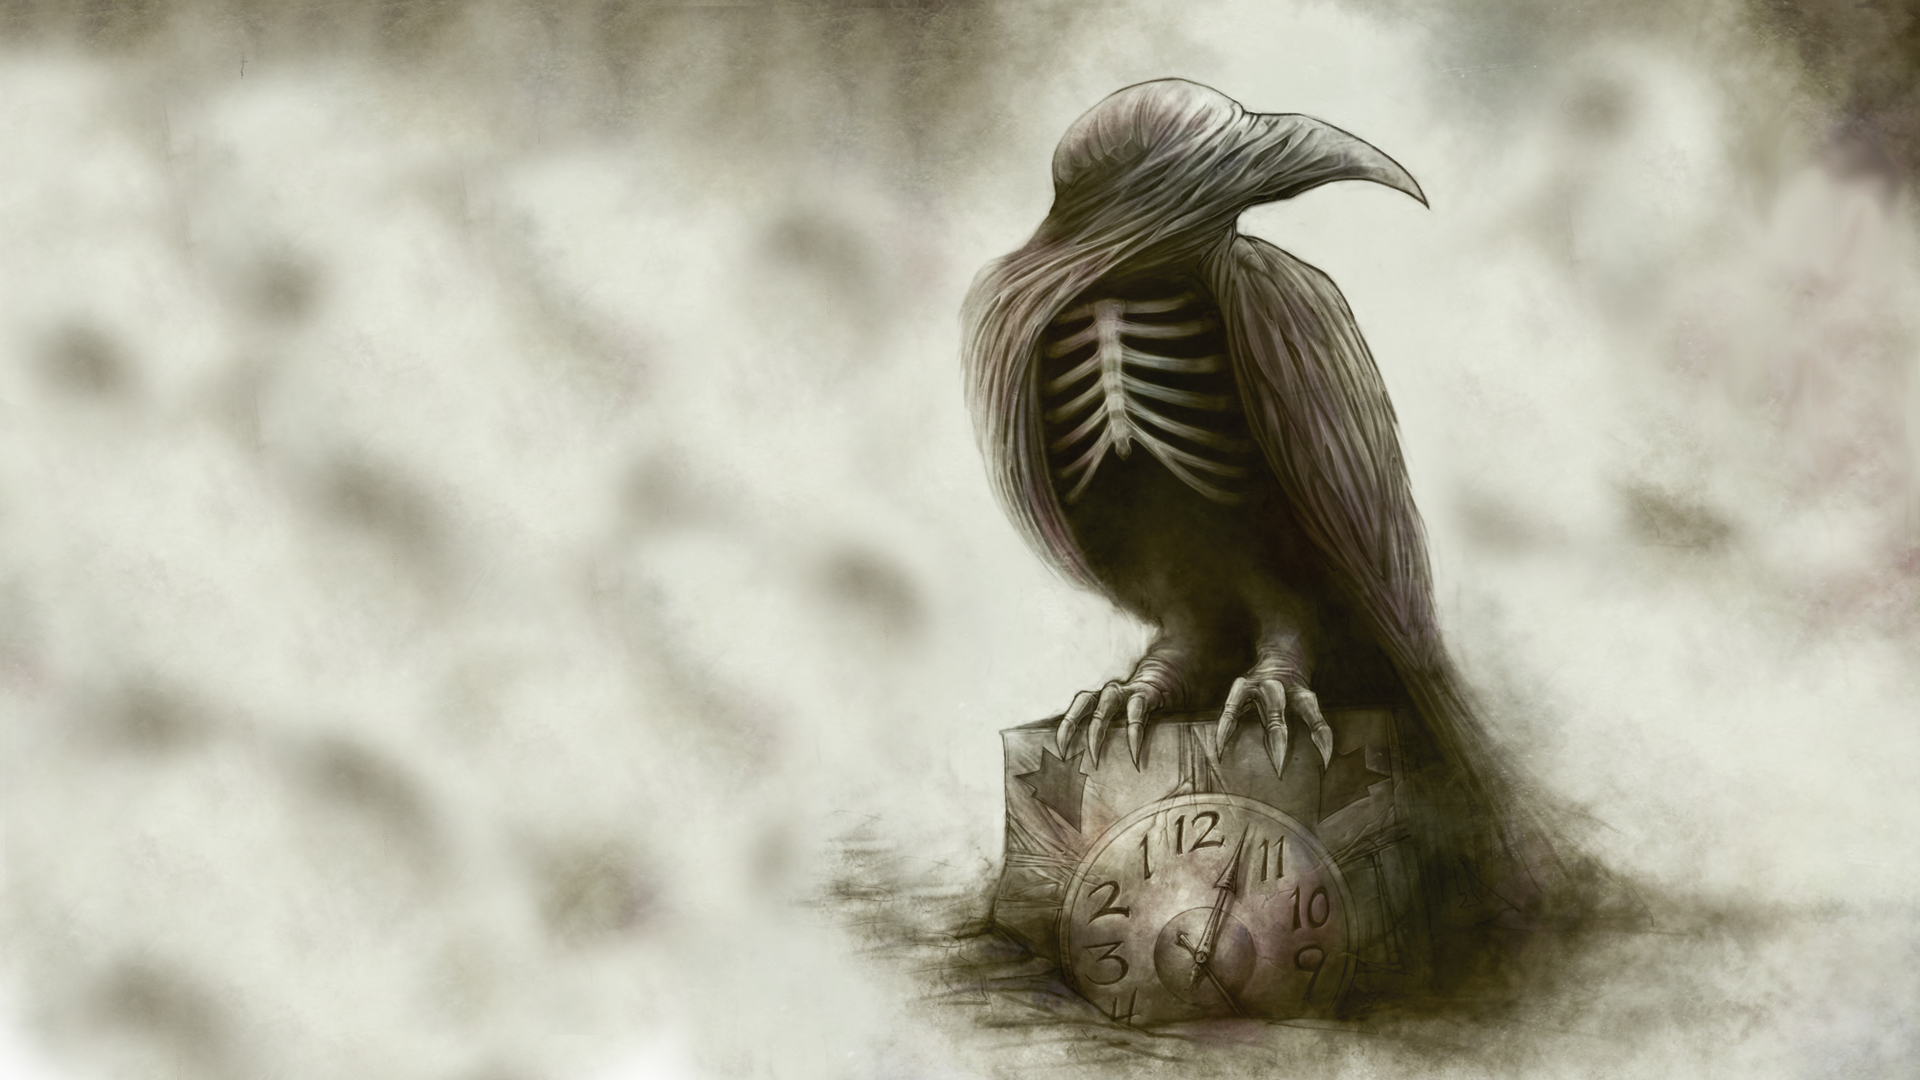 Bird Clock Drawing Abstract Creepy Skeleton poe raven gothic dark 1920x1080